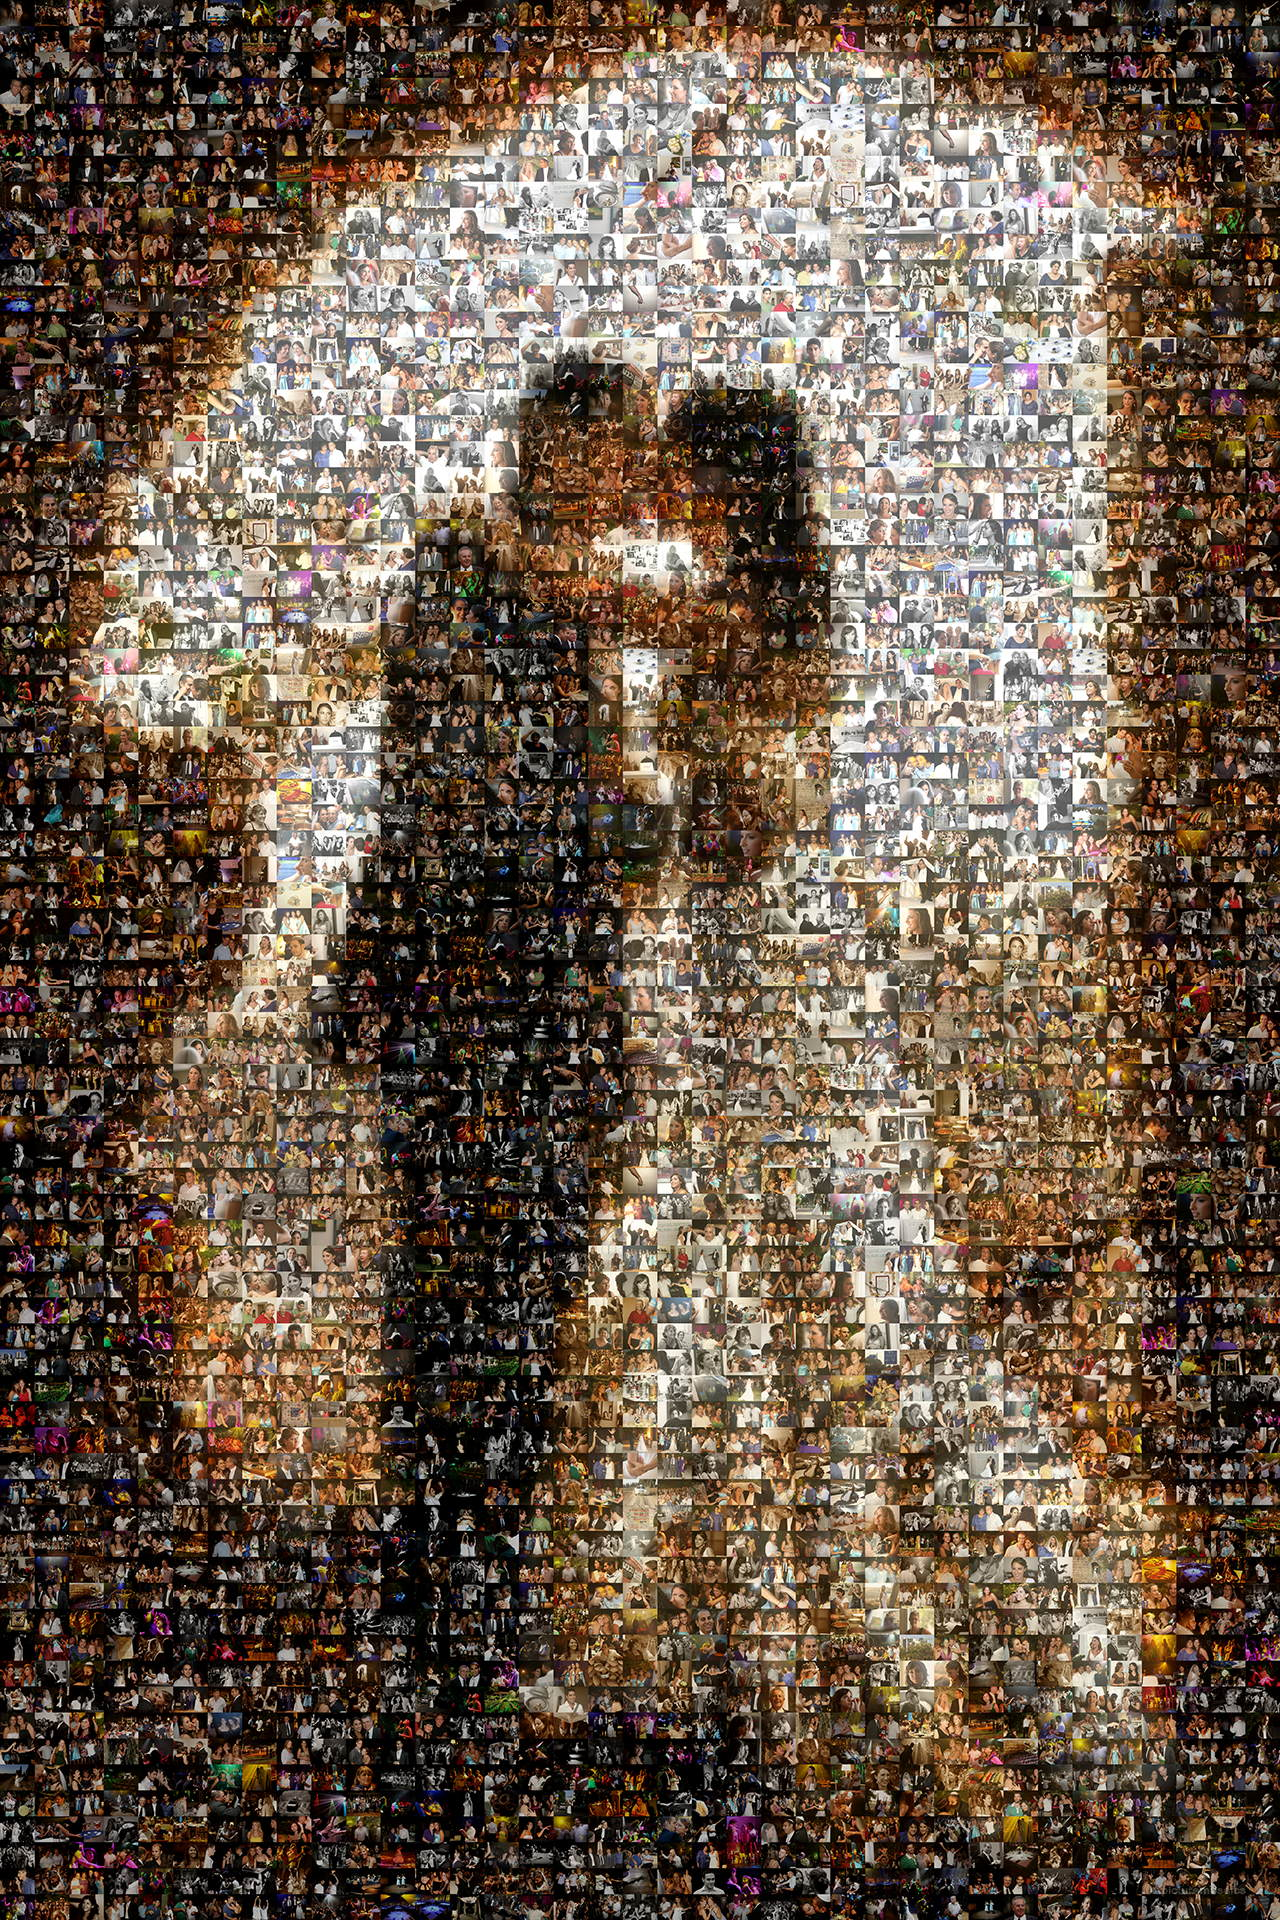 photo mosaic created using 1,134 wedding photos